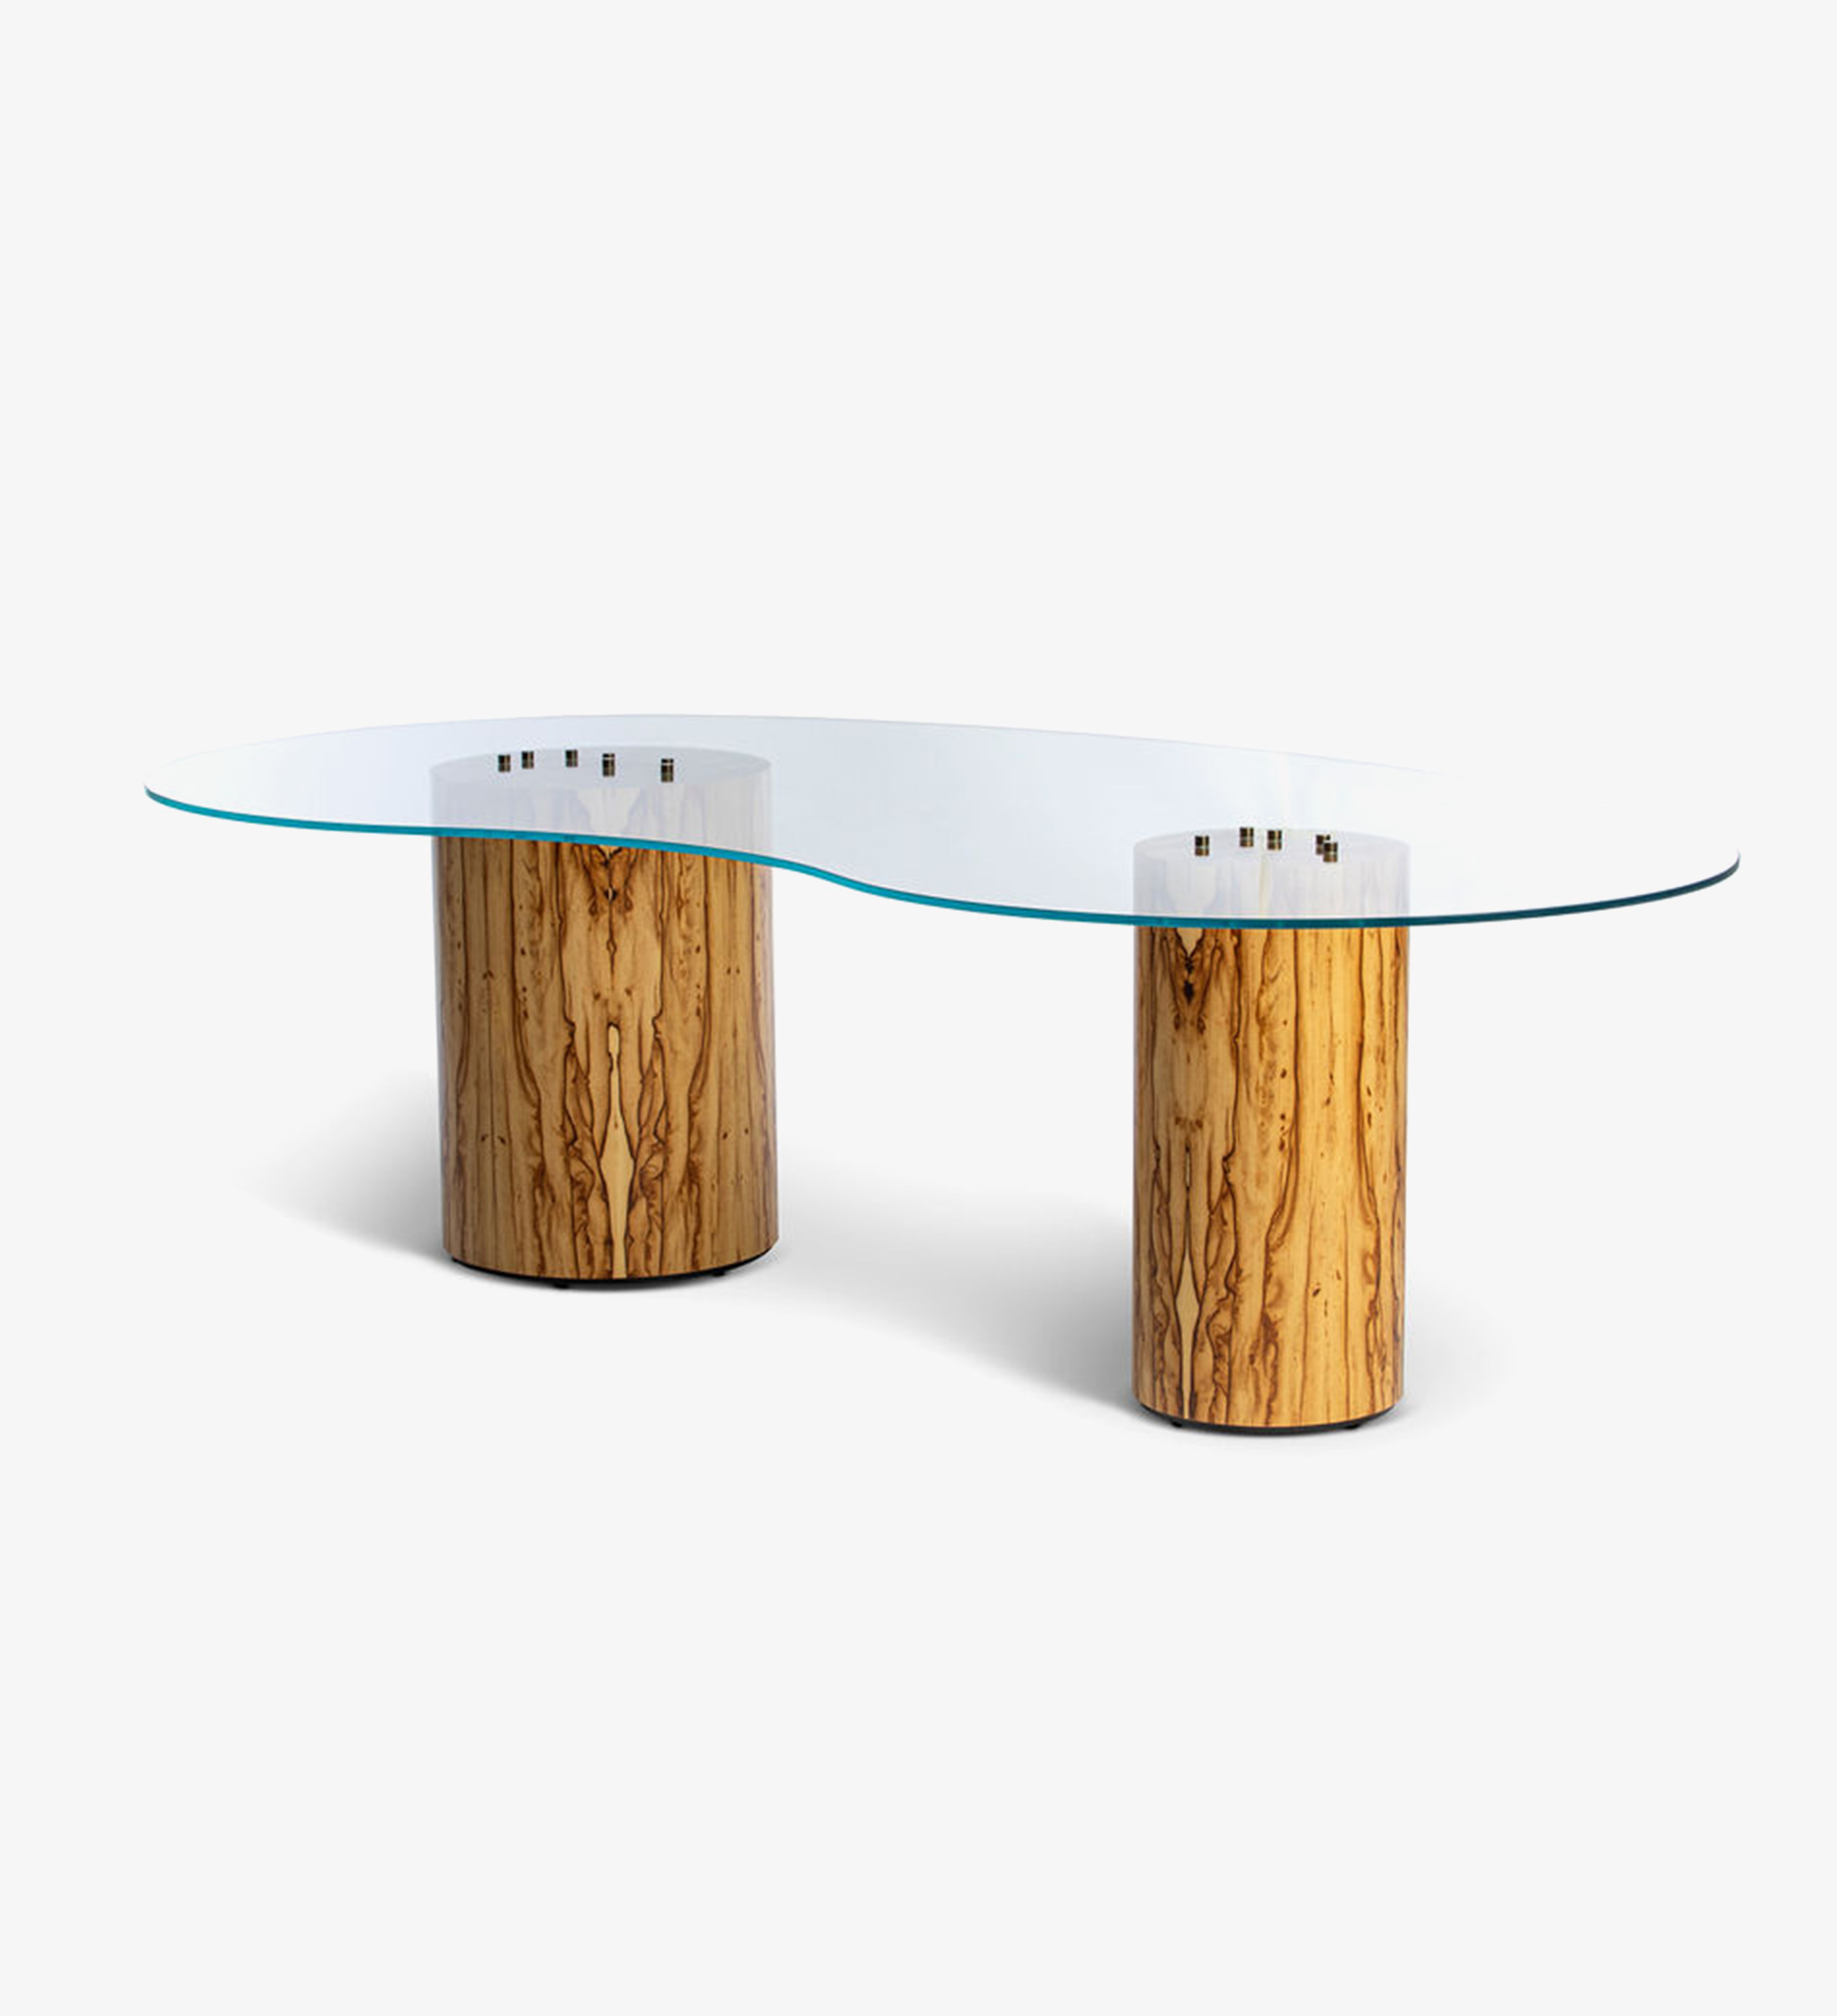 Table, desk, glass, Chen Chen, Flax, Glass top, Bronze, braille, neutral, wood, office, home, home office, see me